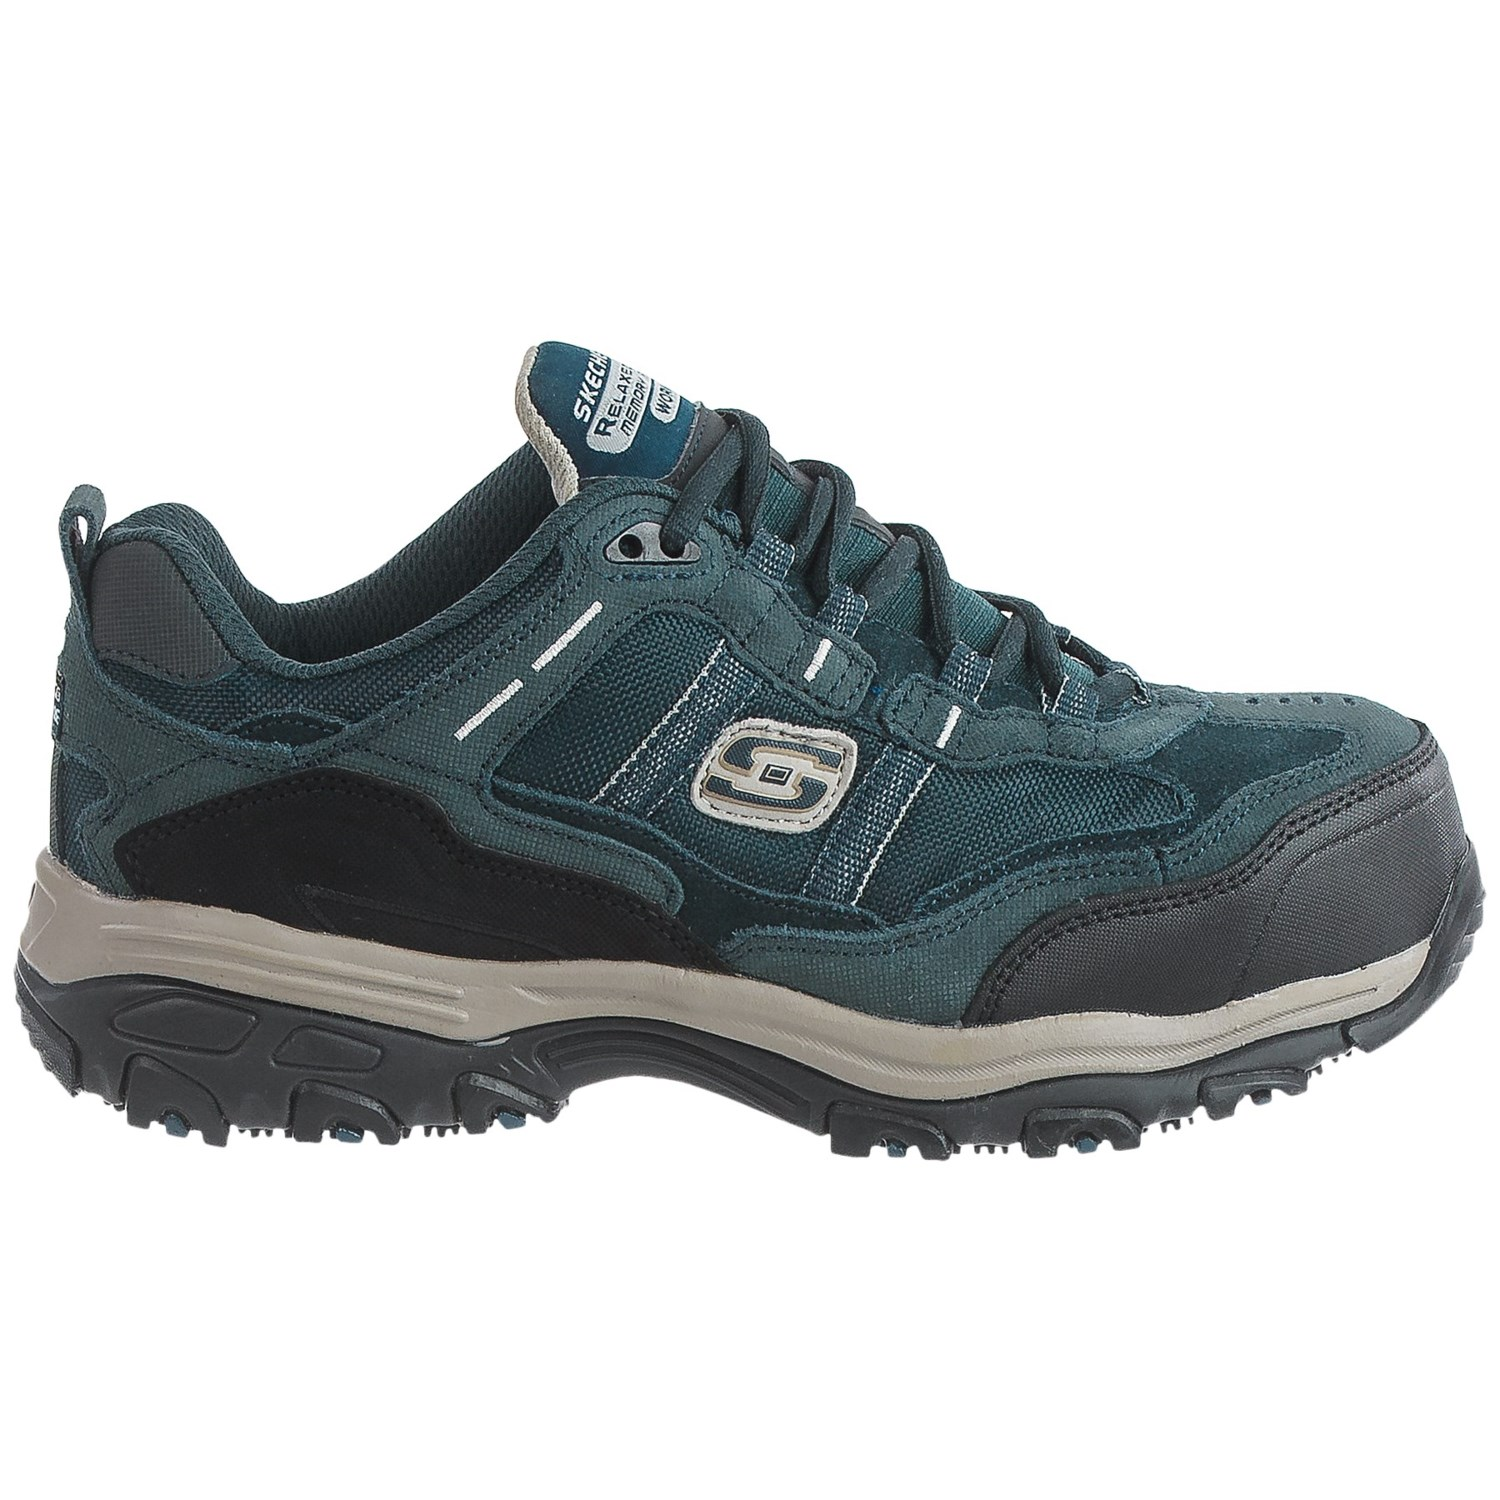 Skechers D'Lites SR Tolland Work Shoes (For Women) - Save 39%